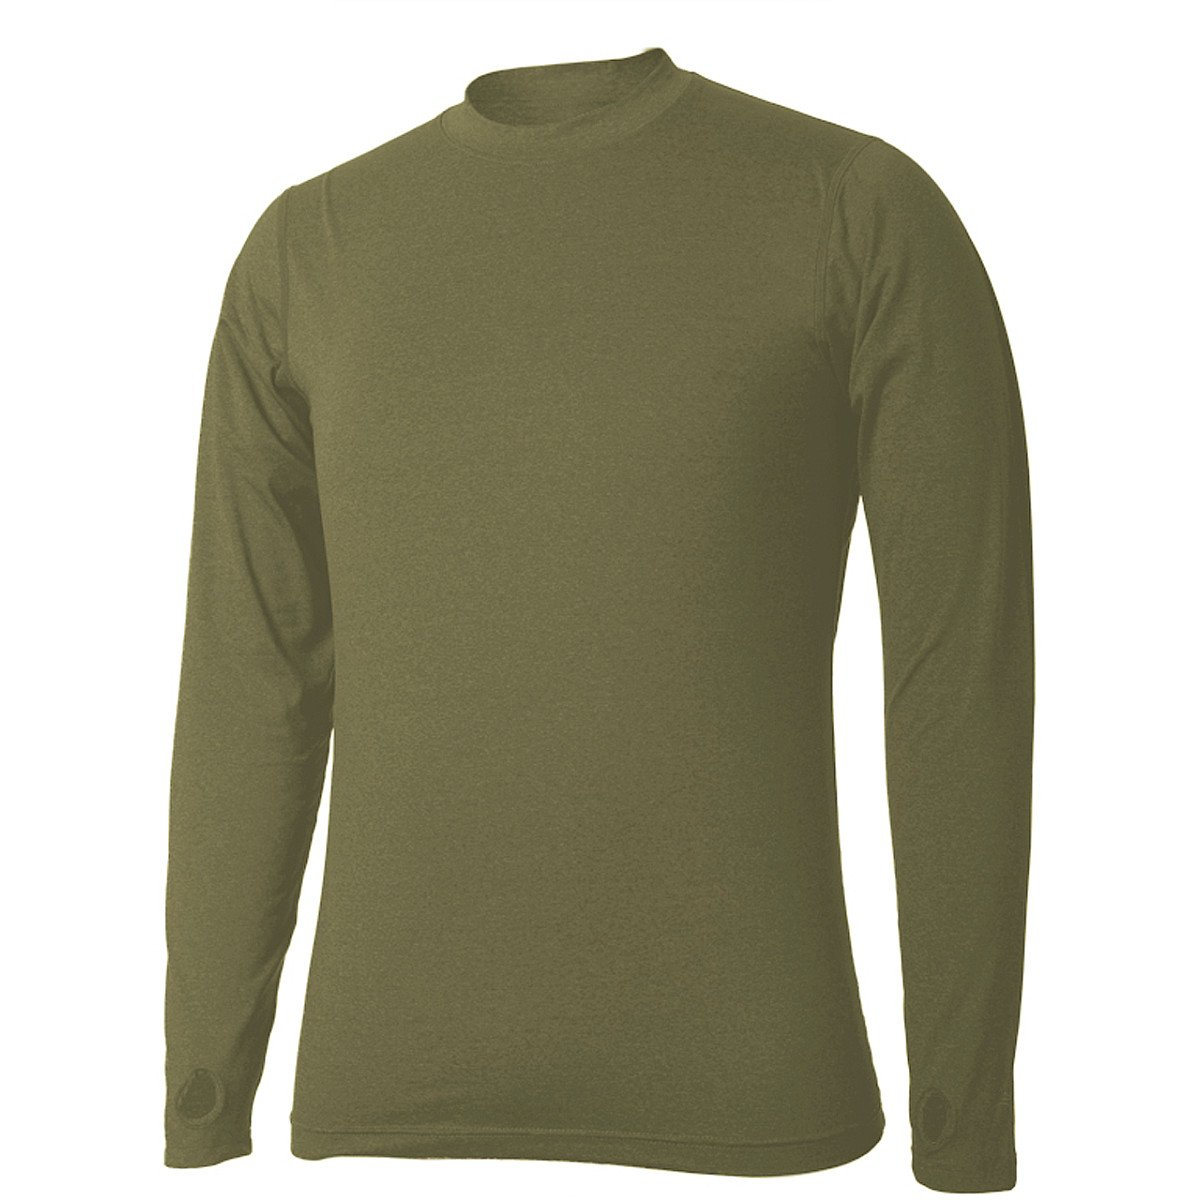 Terramar Men's Thermolator Climasense 4-Way Stretch Brushed Crew Neck Top